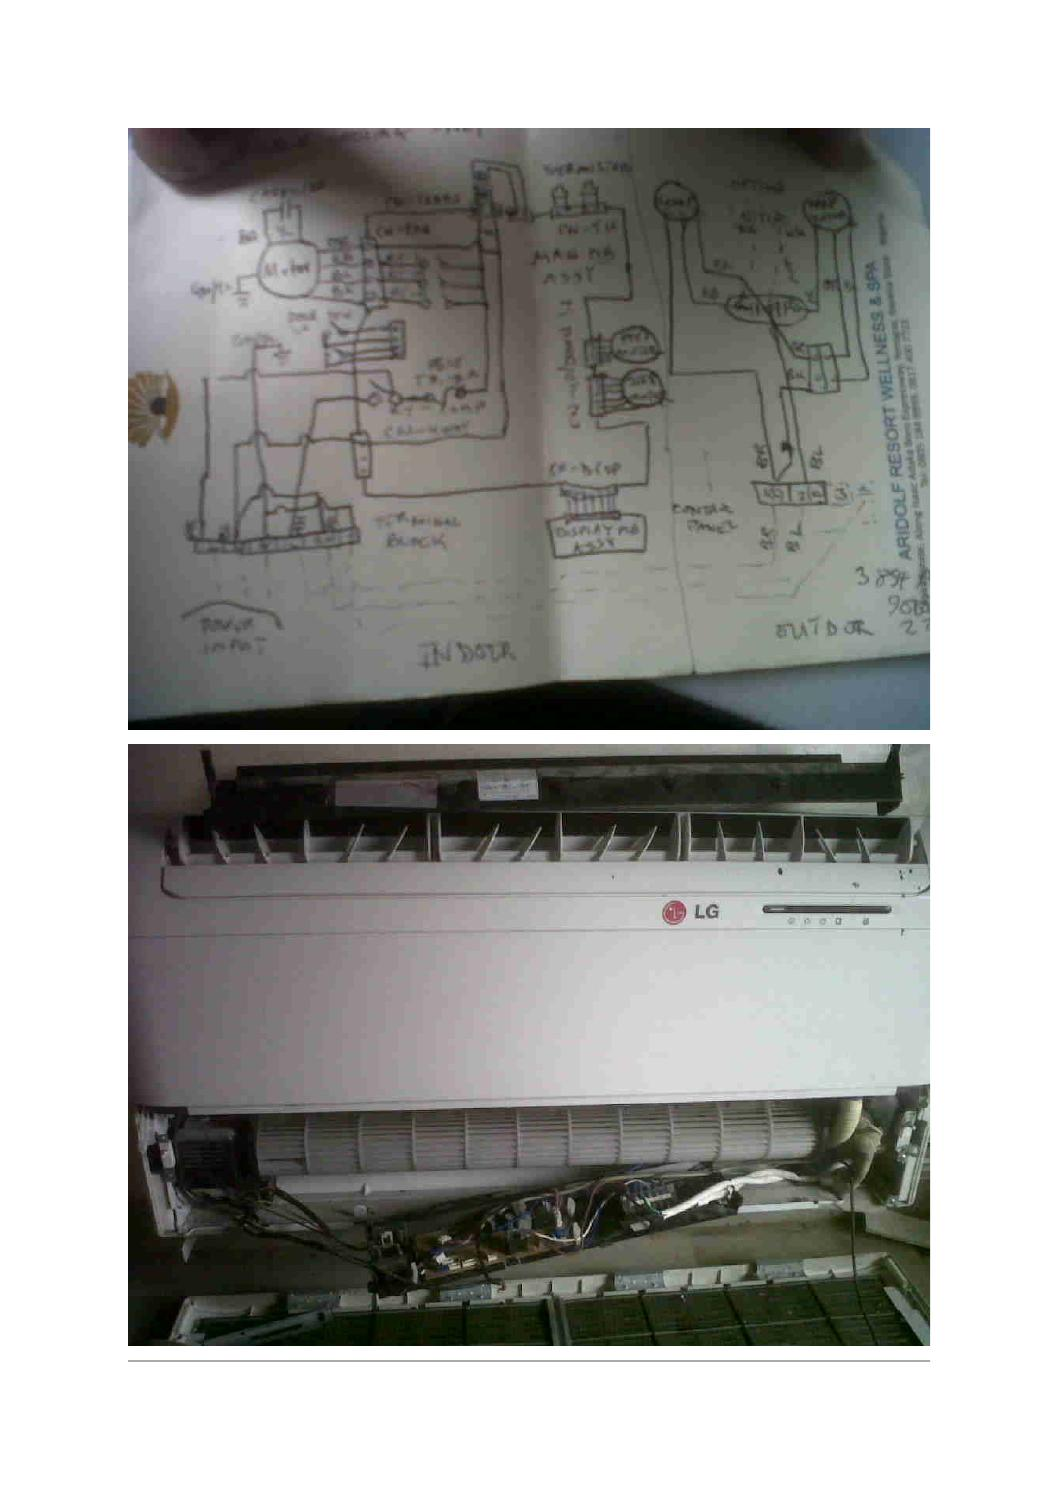 Anatomy Of An Lg Split Unit Air Conditioner Panel By Bayelsatimes Sziklai Pair With The Circuit Shown You Construct A Pnp Mediagroup Issuu